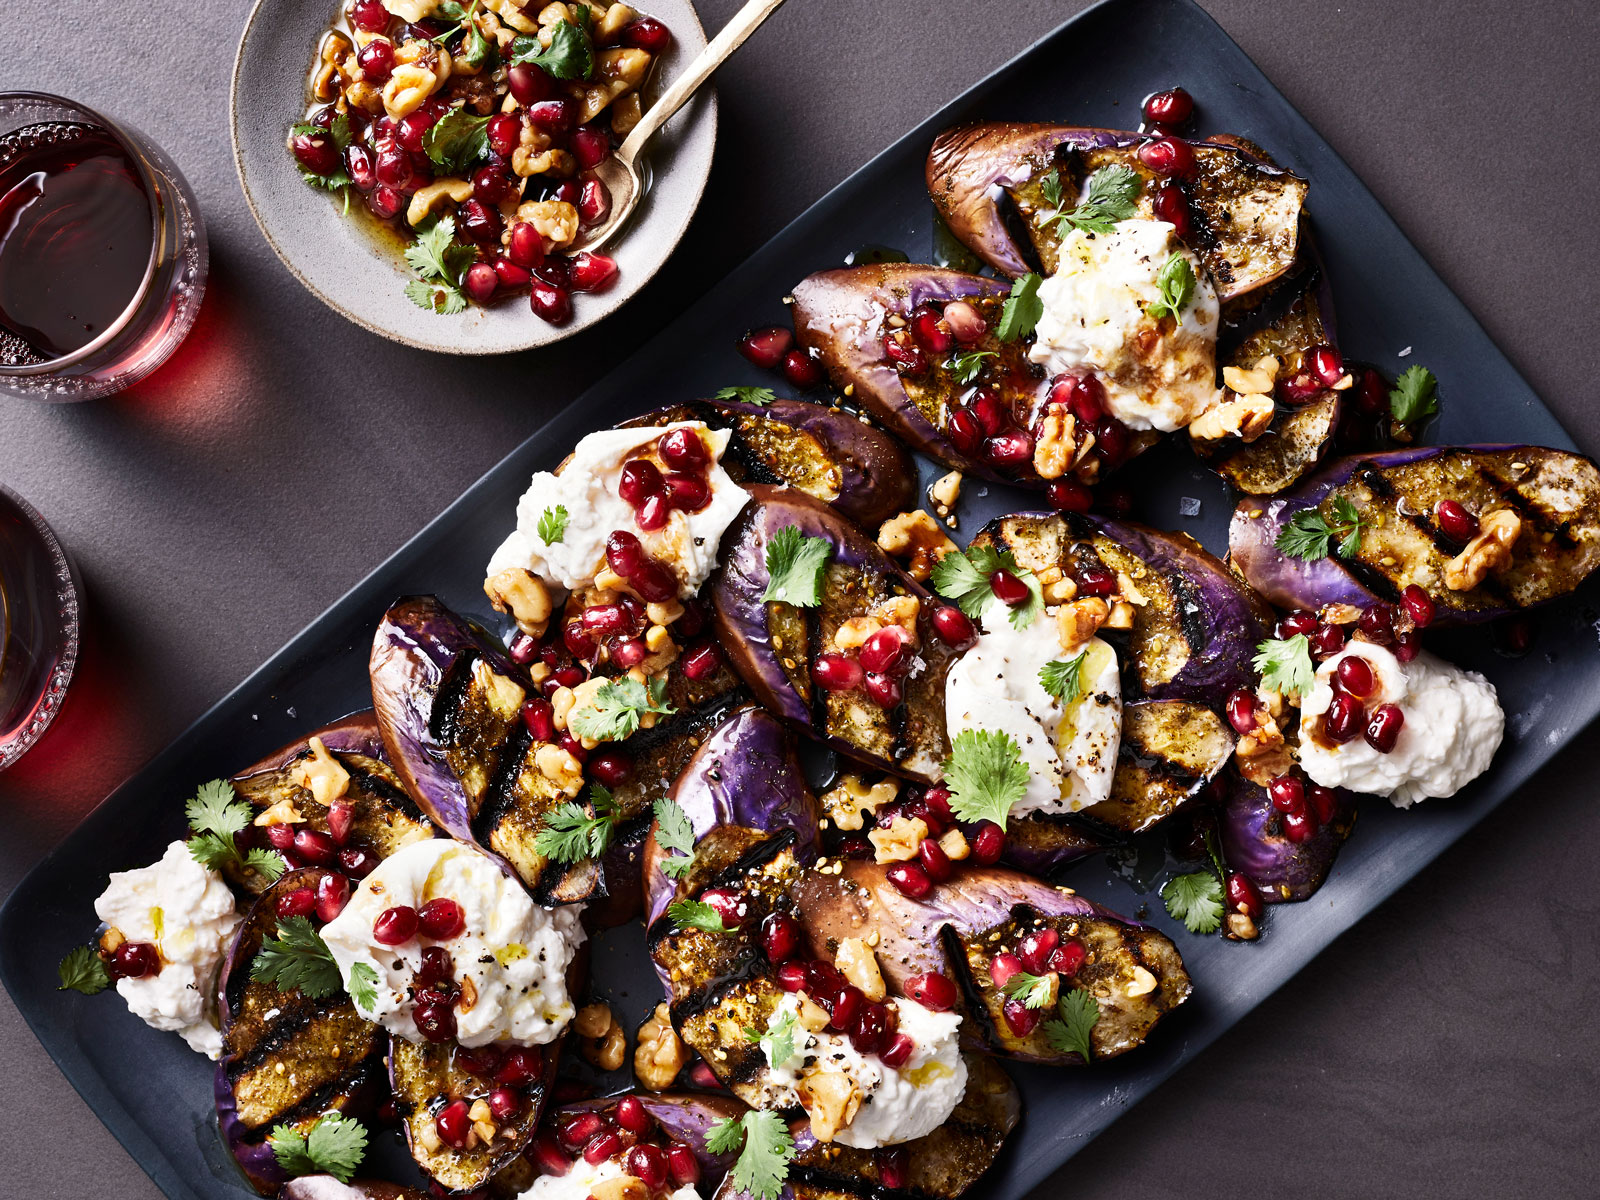 Charred Eggplant with Burrata and Pomegranate-Walnut Relish